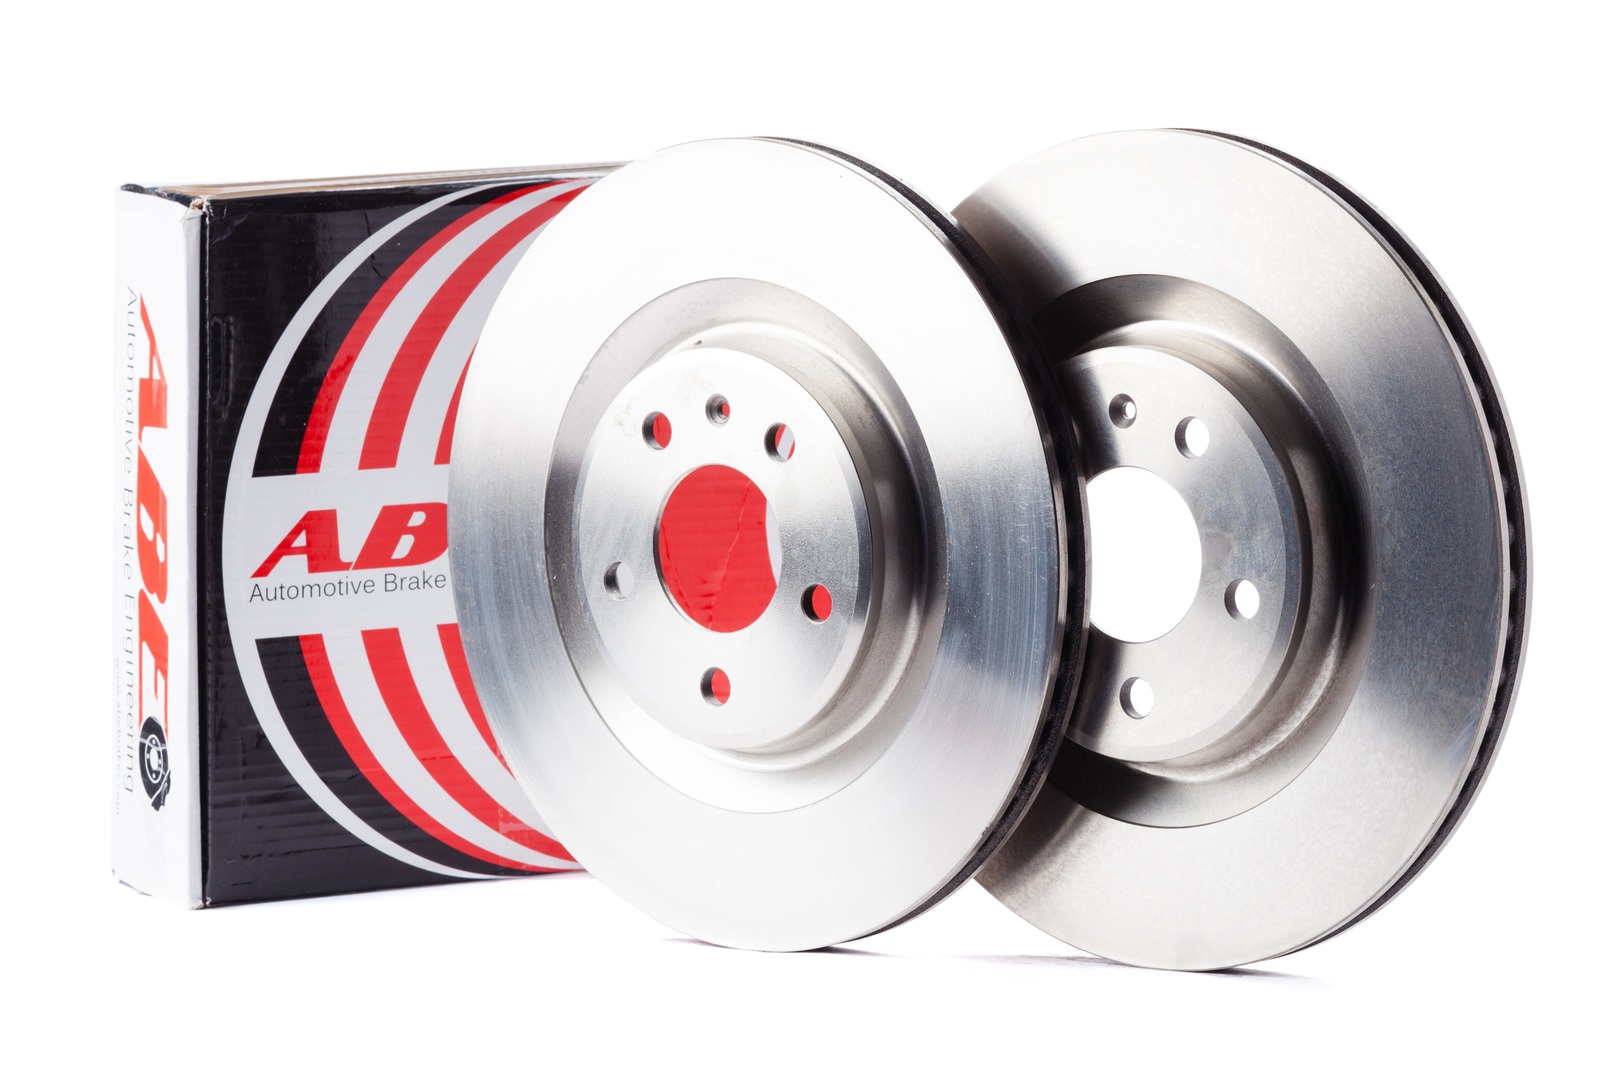 C3x036abe Brake Disc Applicable For The Opel And Saab Spareto Uk